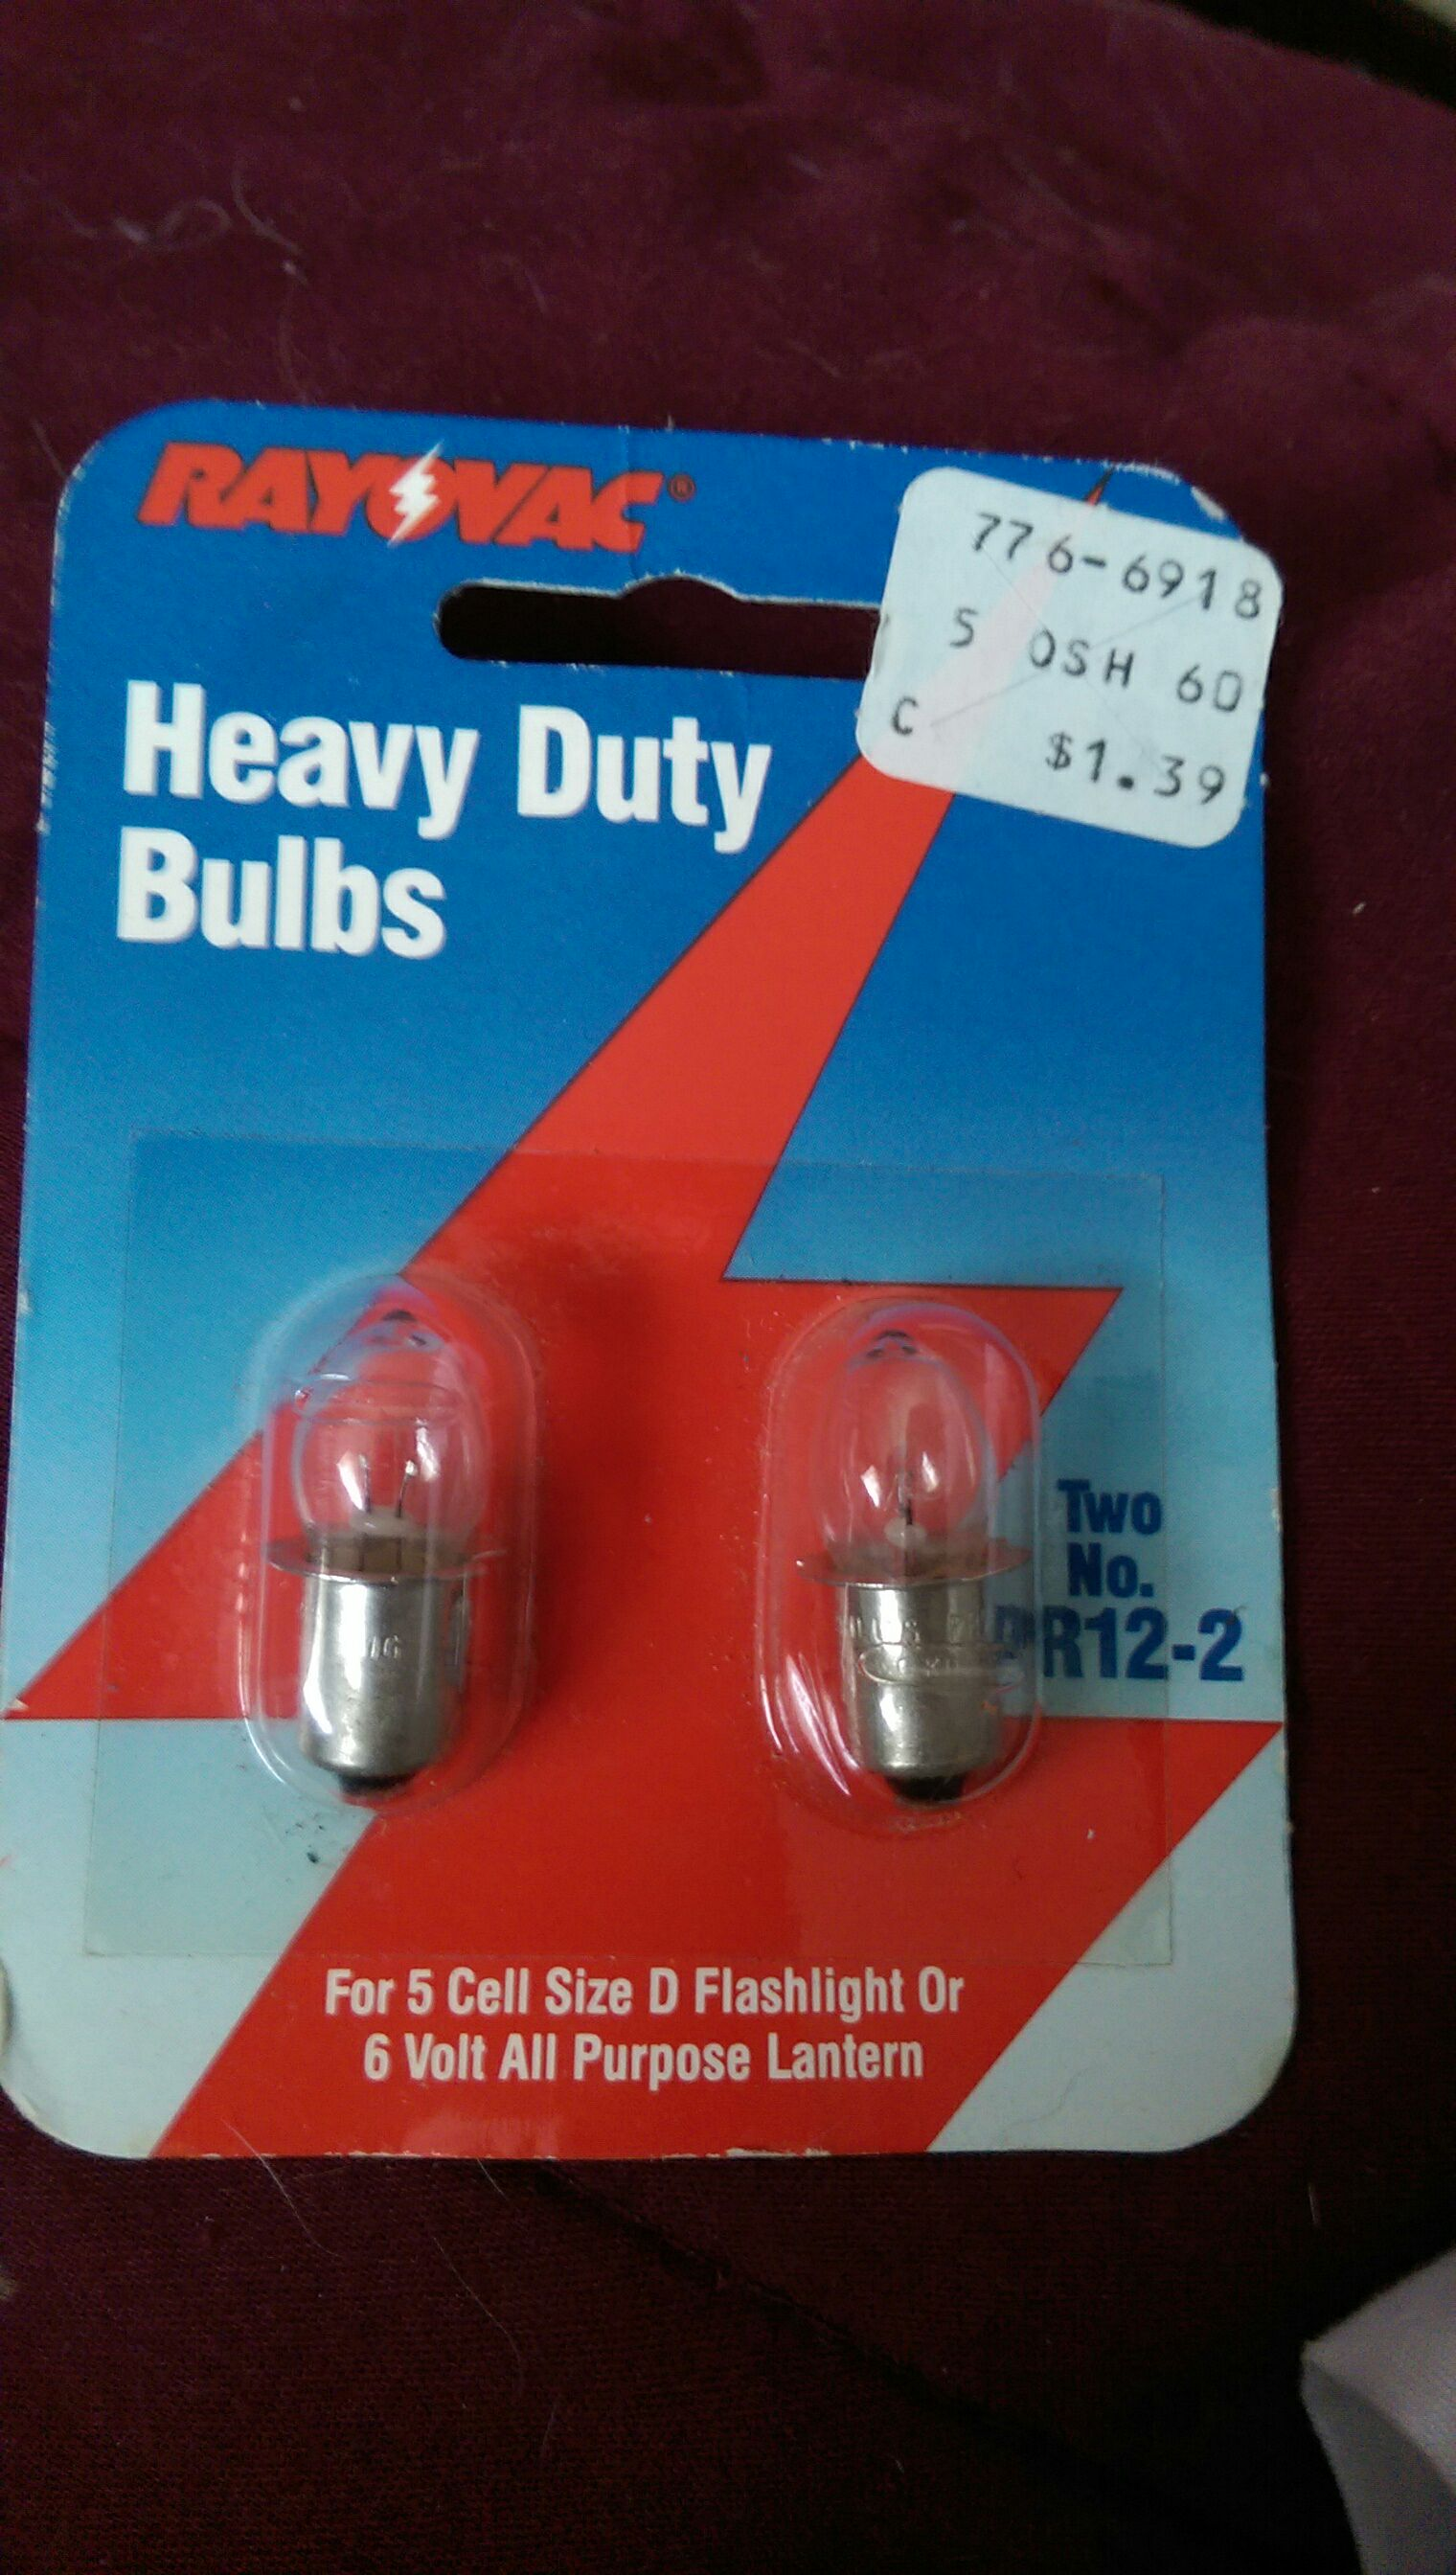 Heavy Duty Bulbs Ornament front image (front cover)